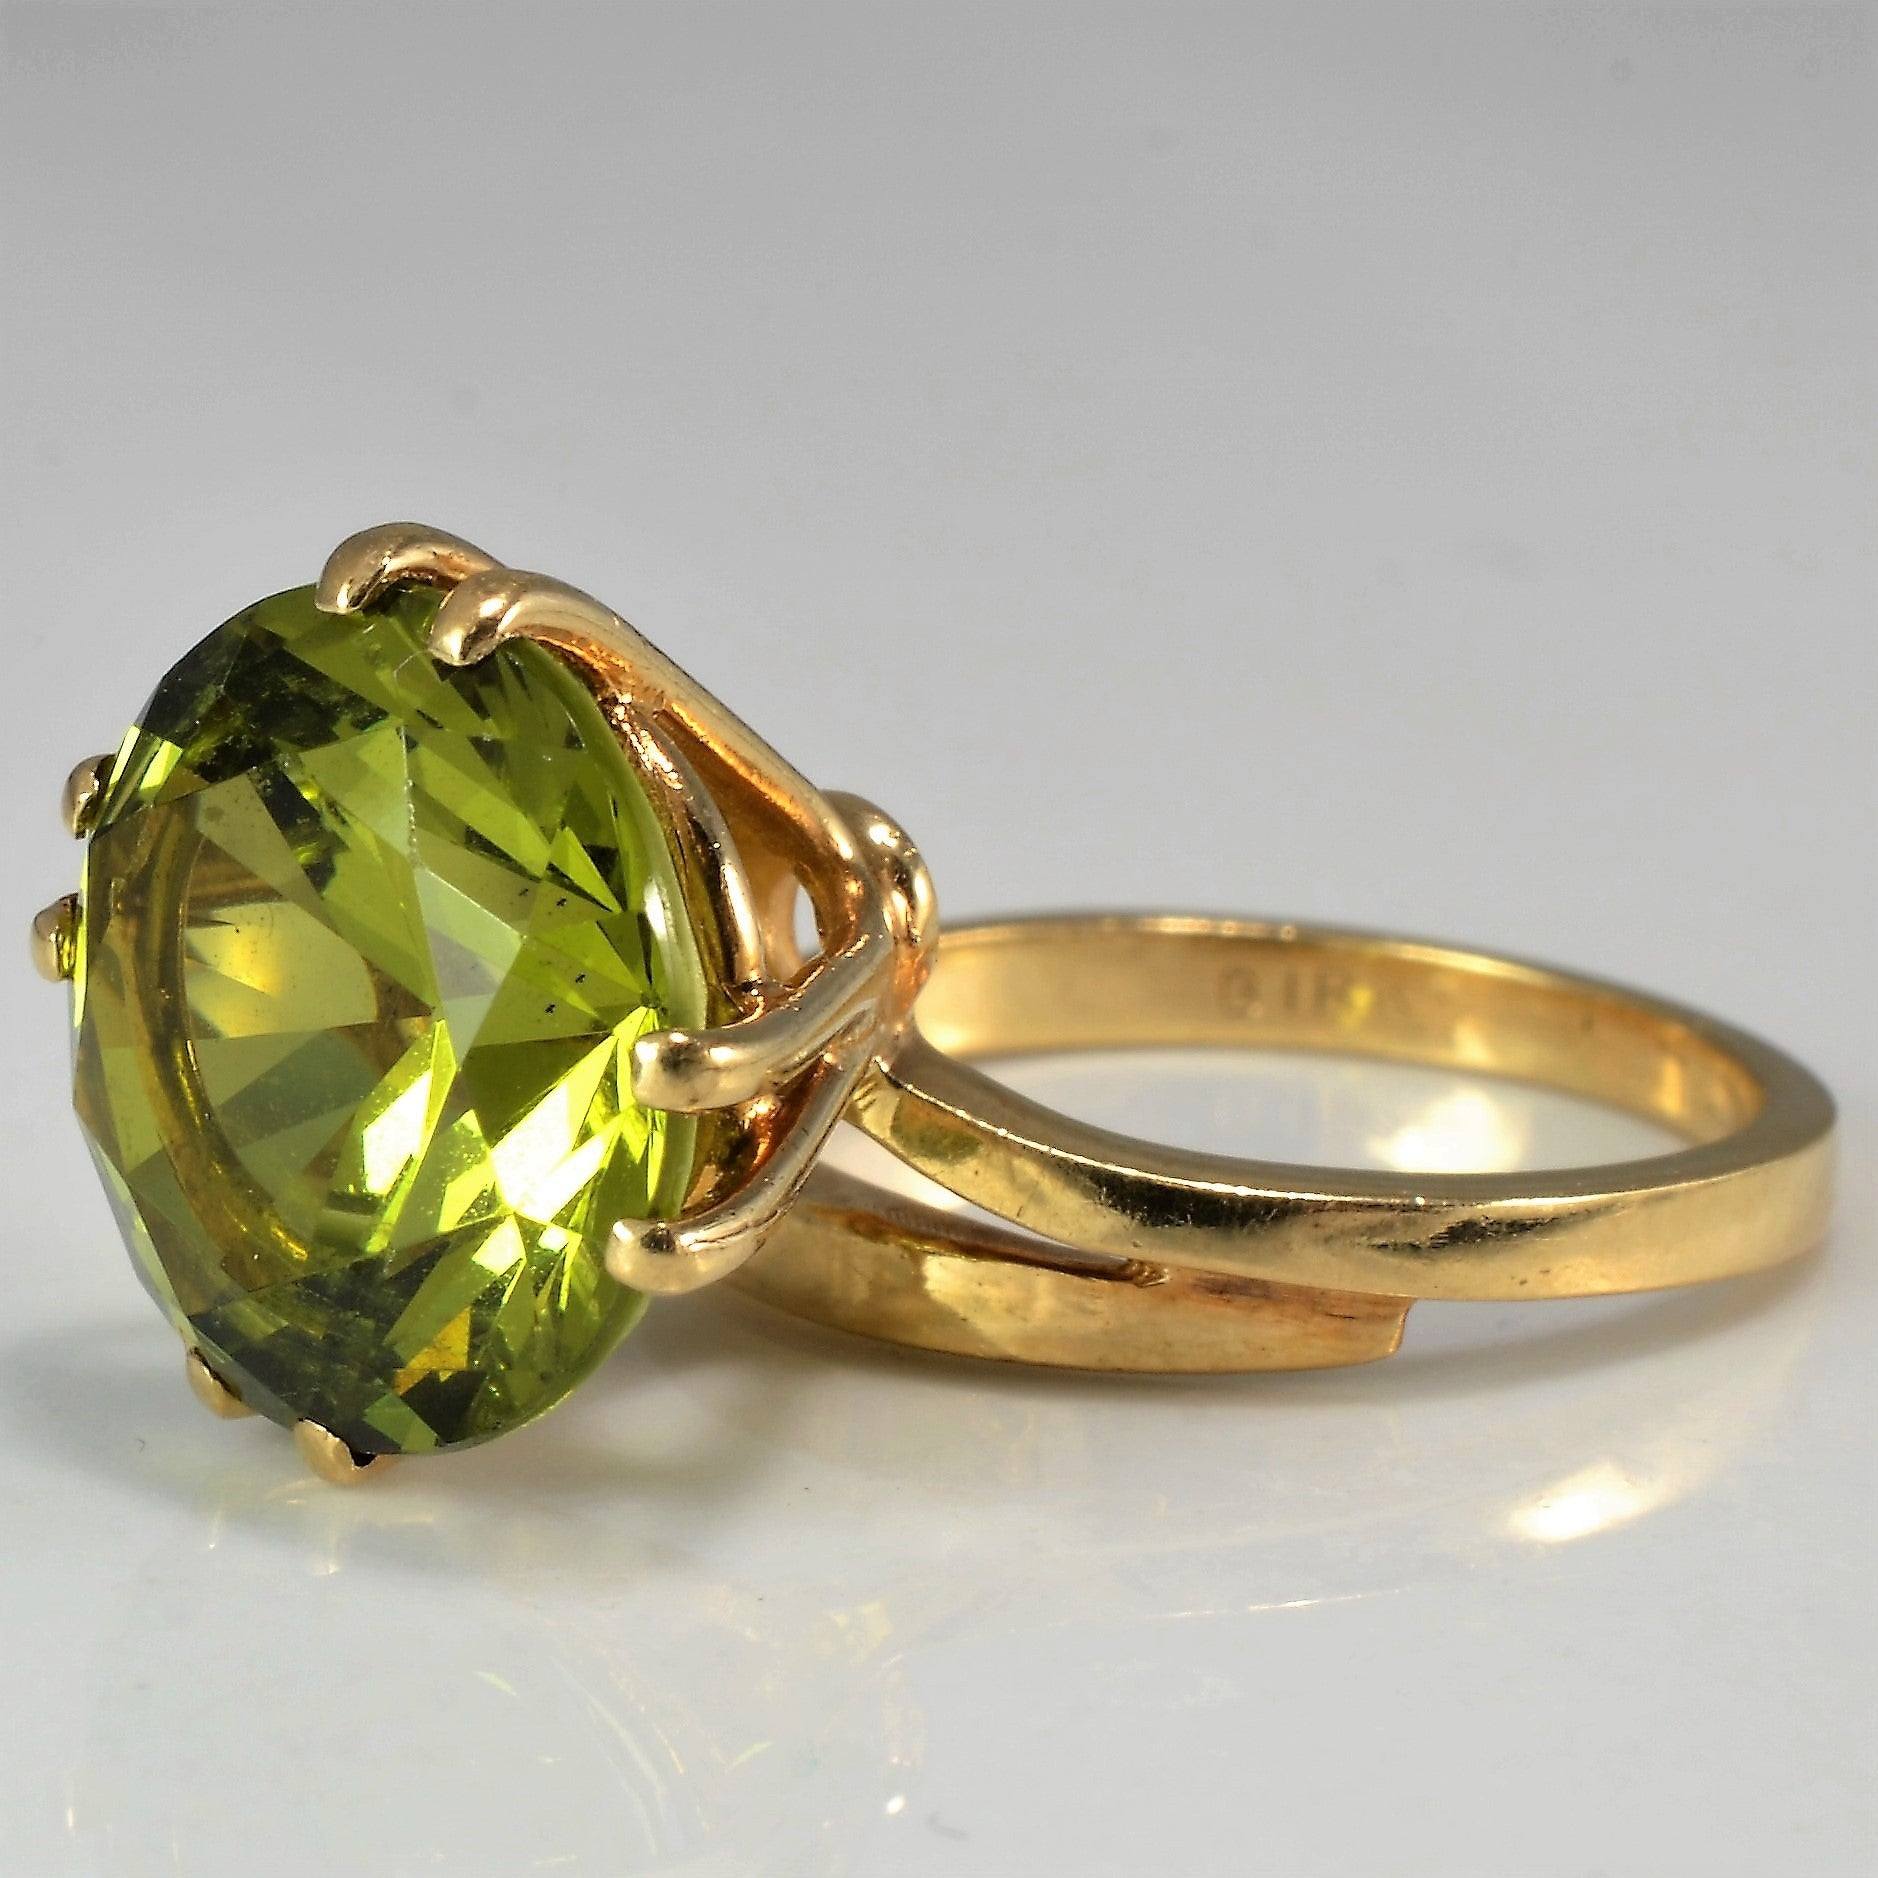 tapered rings tsavorite garnet ring stunning with platinum baguette diamonds